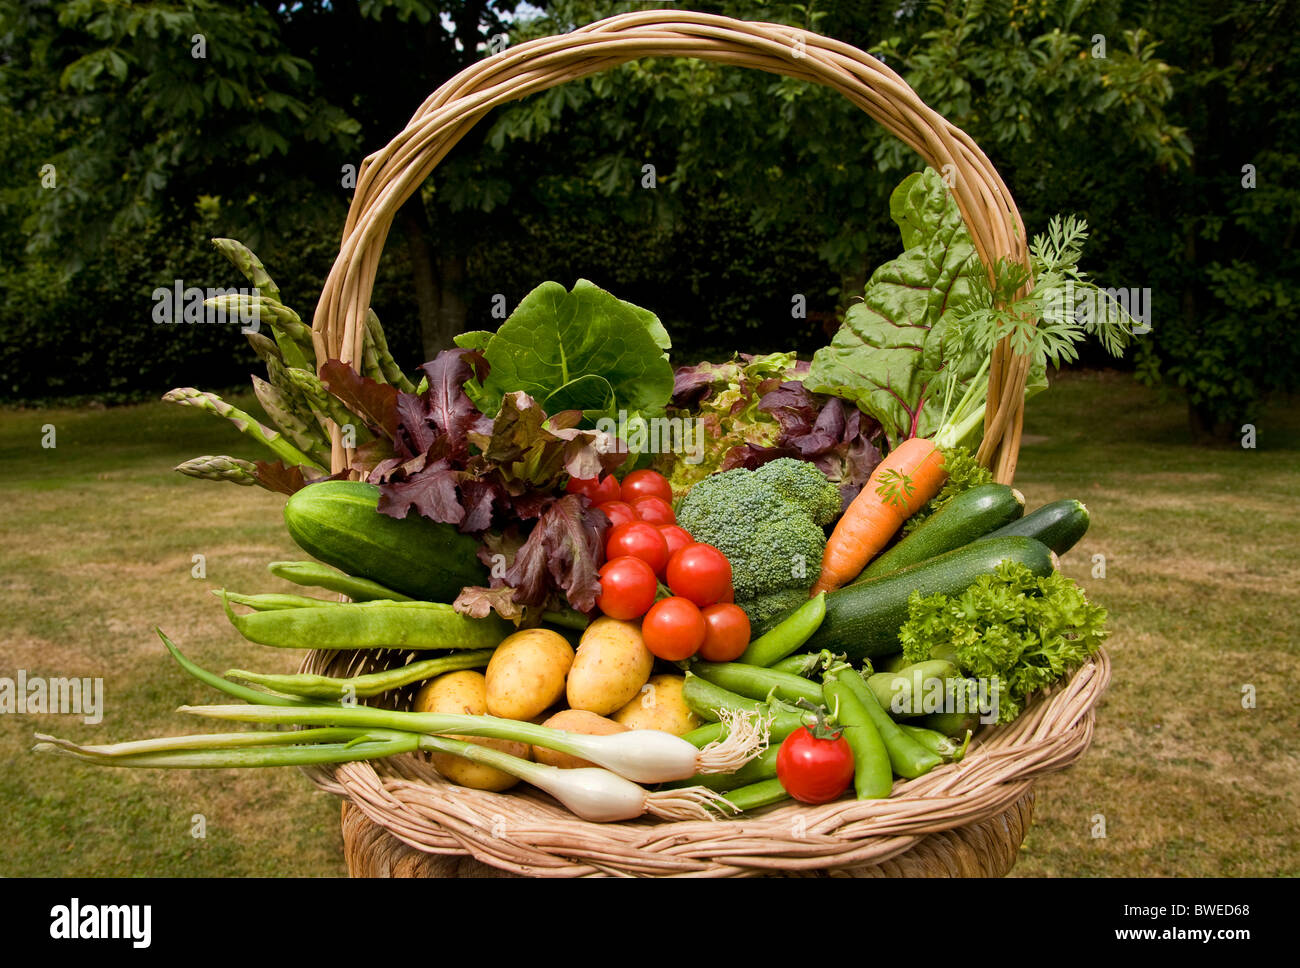 Colourful basket trug of locally grown freshly picked summer vegetables in country garden with trees in the Weald - Stock Image